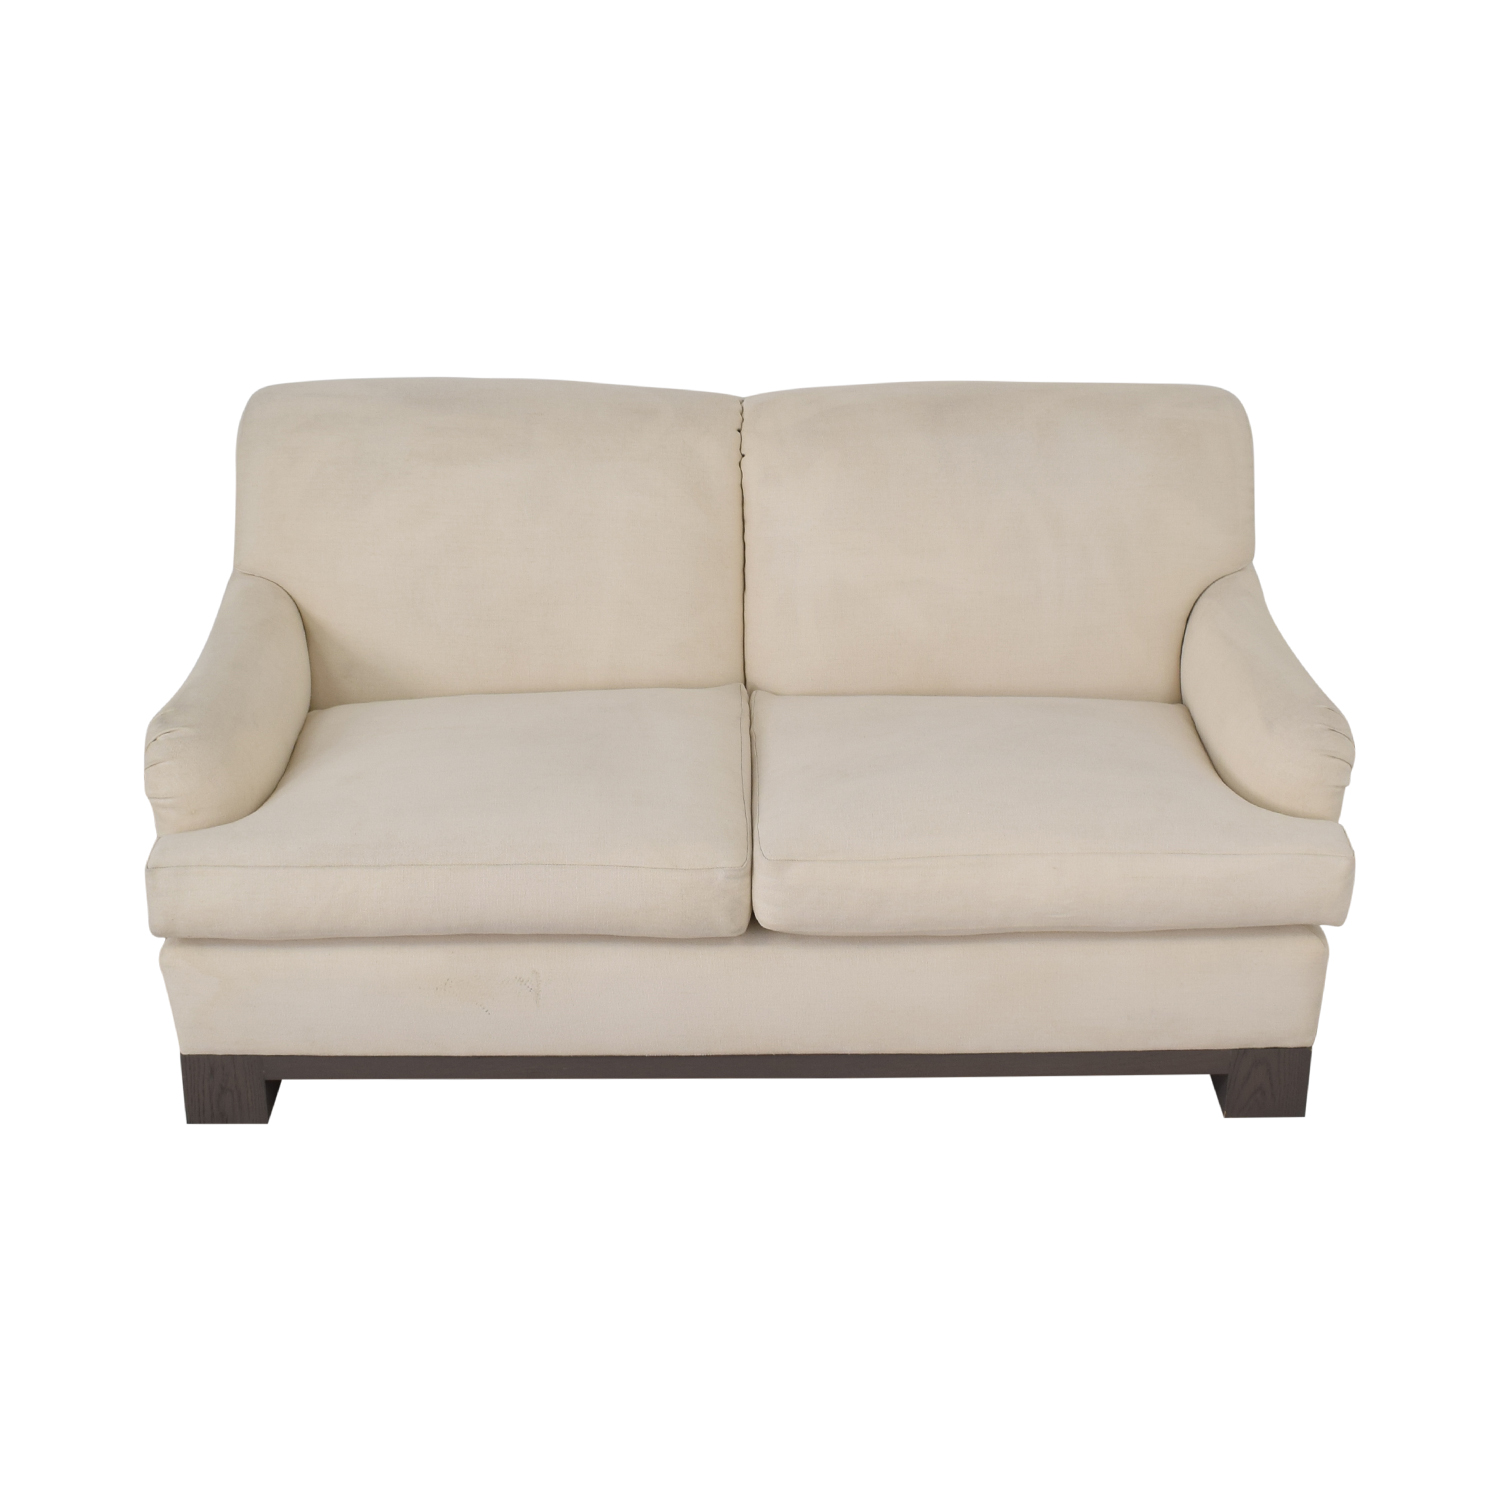 Furniture Masters Furniture Masters White Sofa coupon